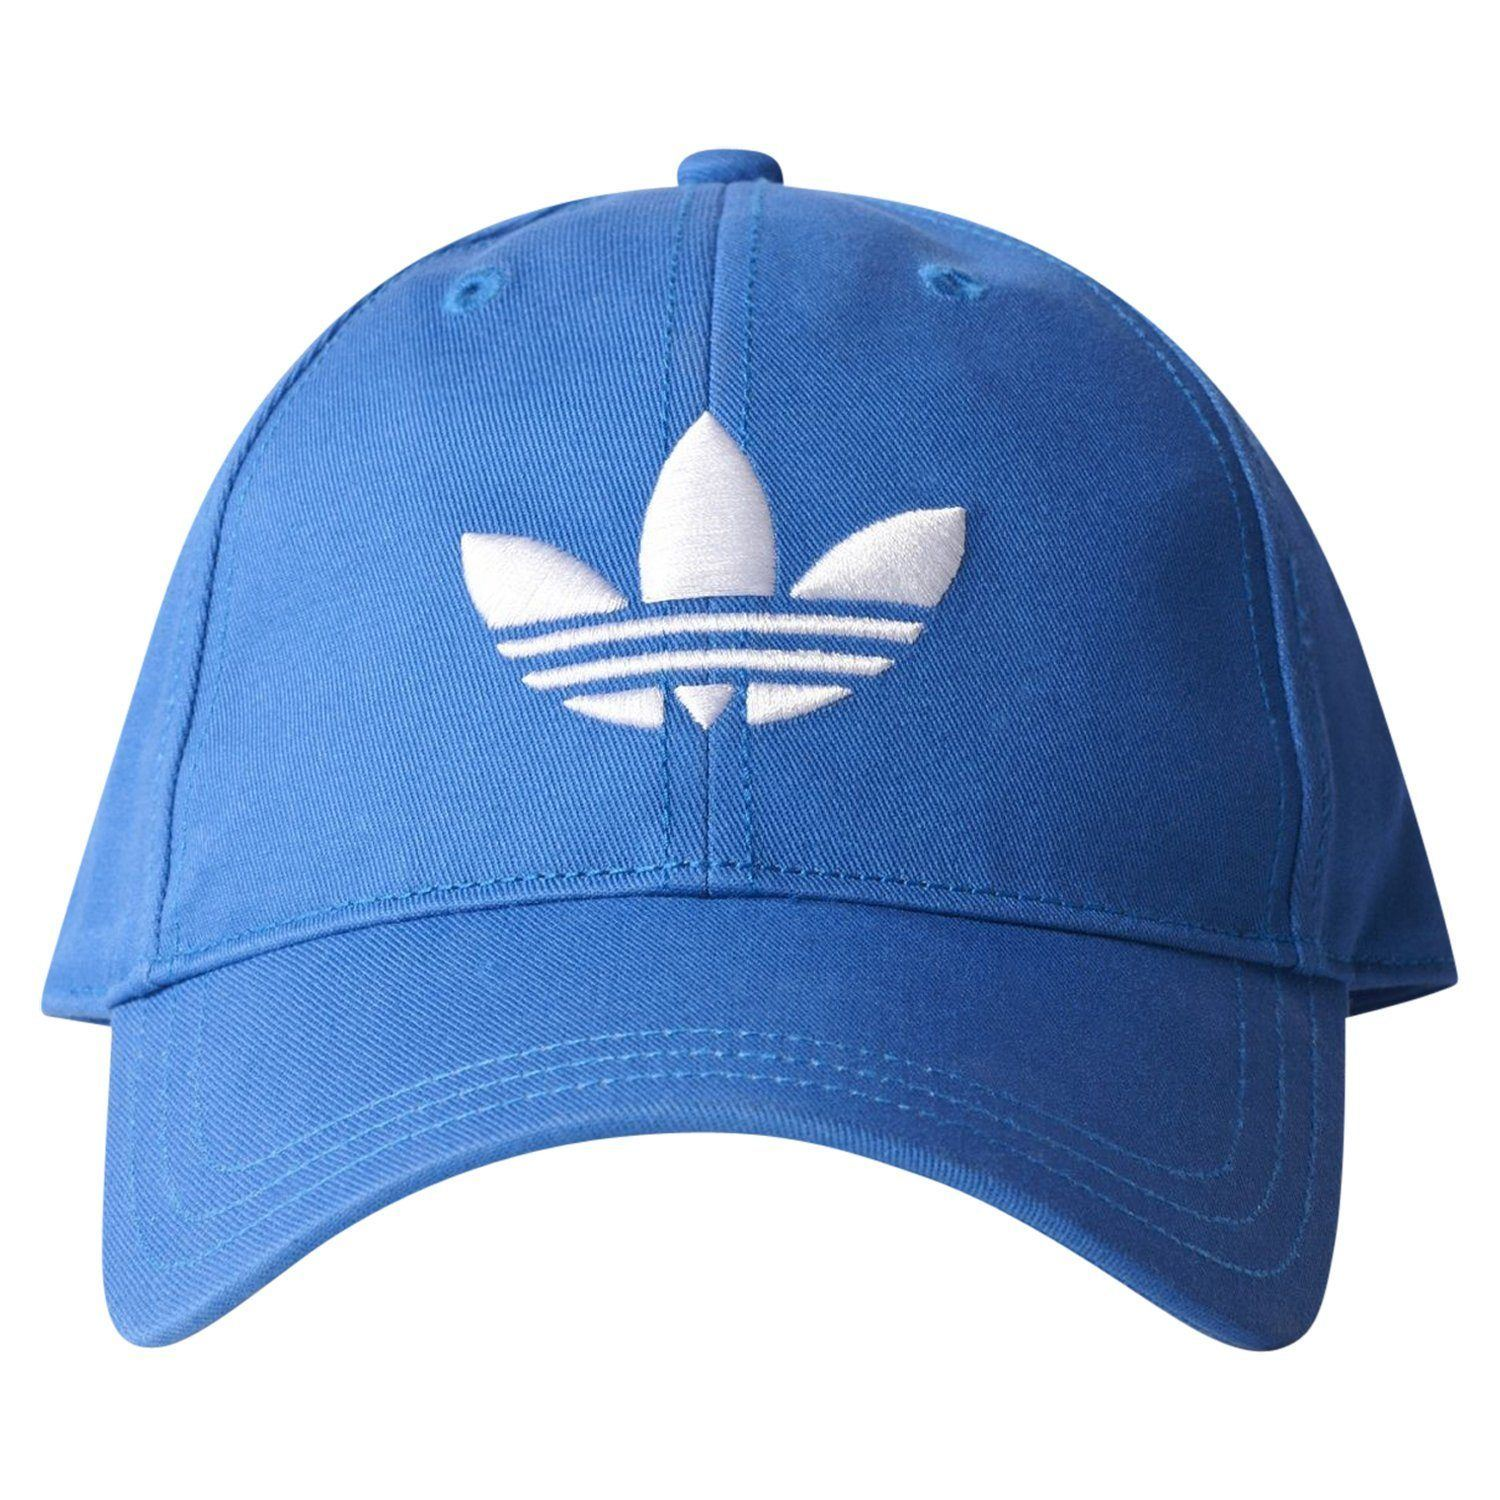 Details about adidas ORIGINALS TREFOIL BASEBALL DAD CAP HAT BLUE MEN S  SUMMER HOLIDAY NEW BNWT f77483e4a814